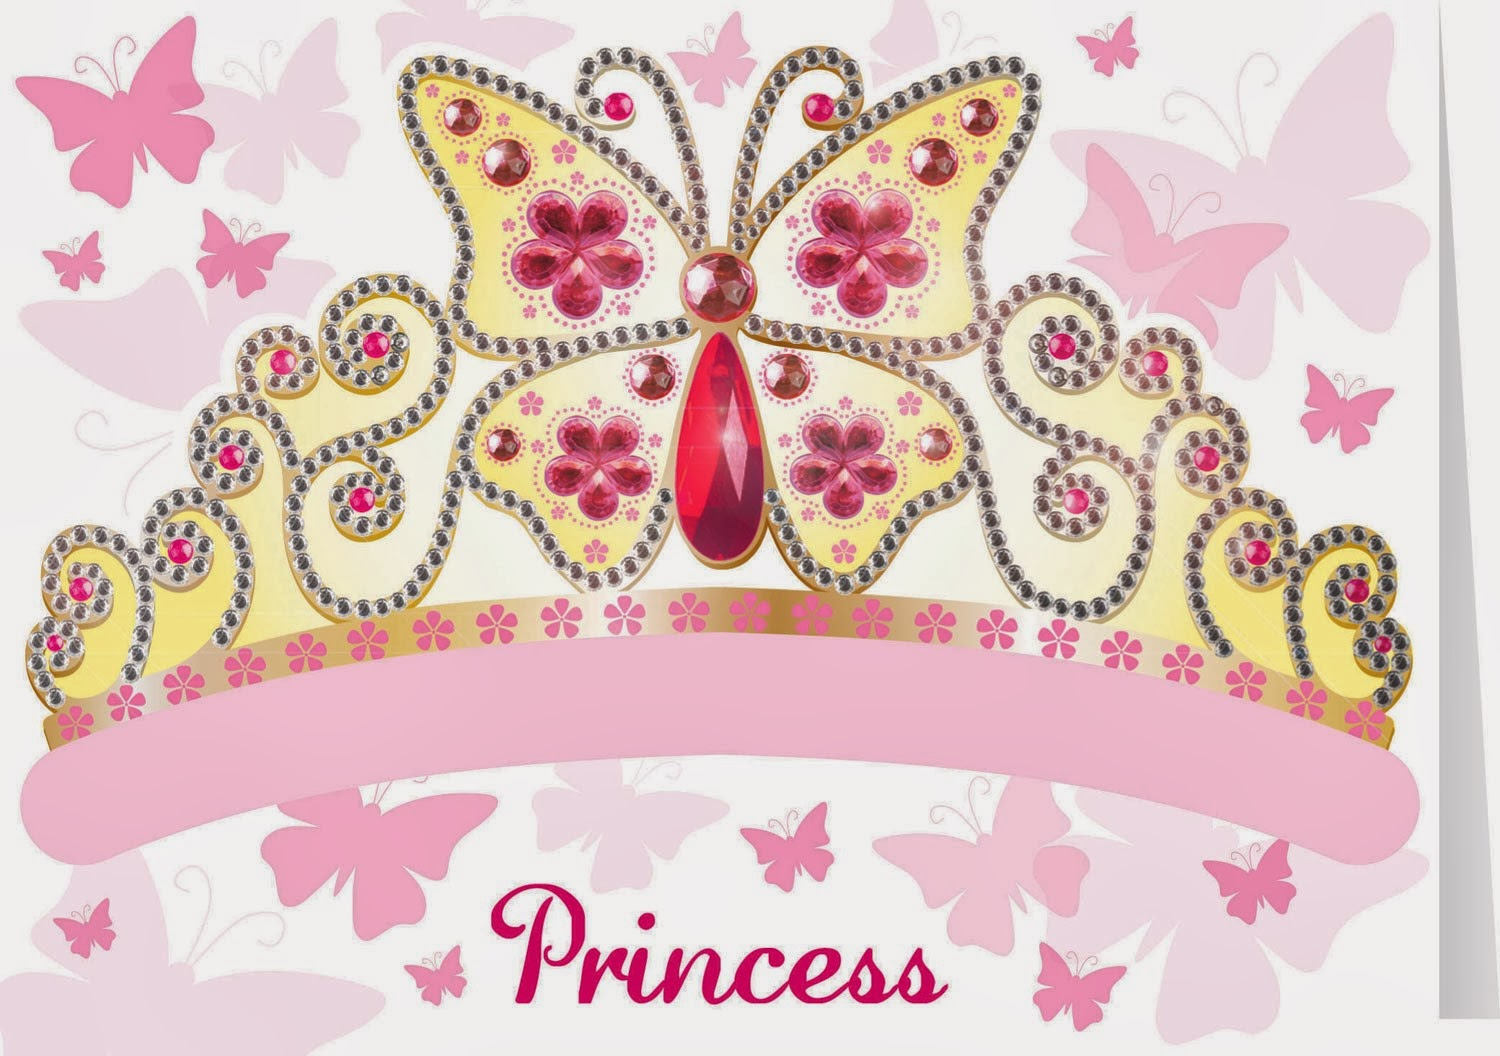 Free Printable Princess Tiara. | Is it for PARTIES? Is it FREE? Is it ...